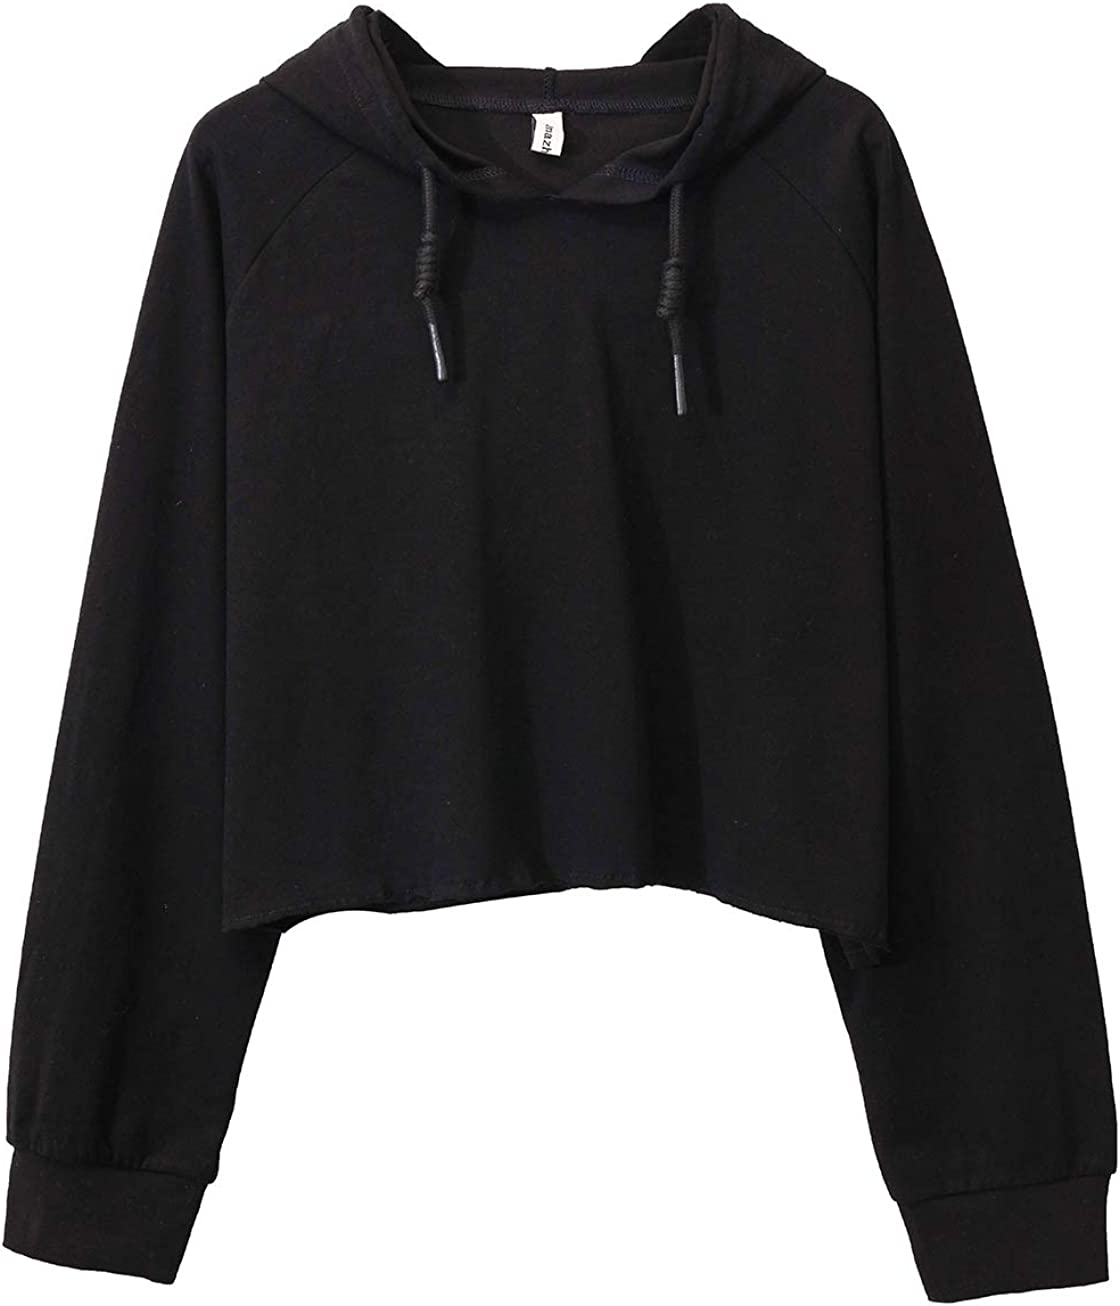 Women's Cropped Sweatshirt Casual Long Sleeve Pullover Crop Top with Hooded